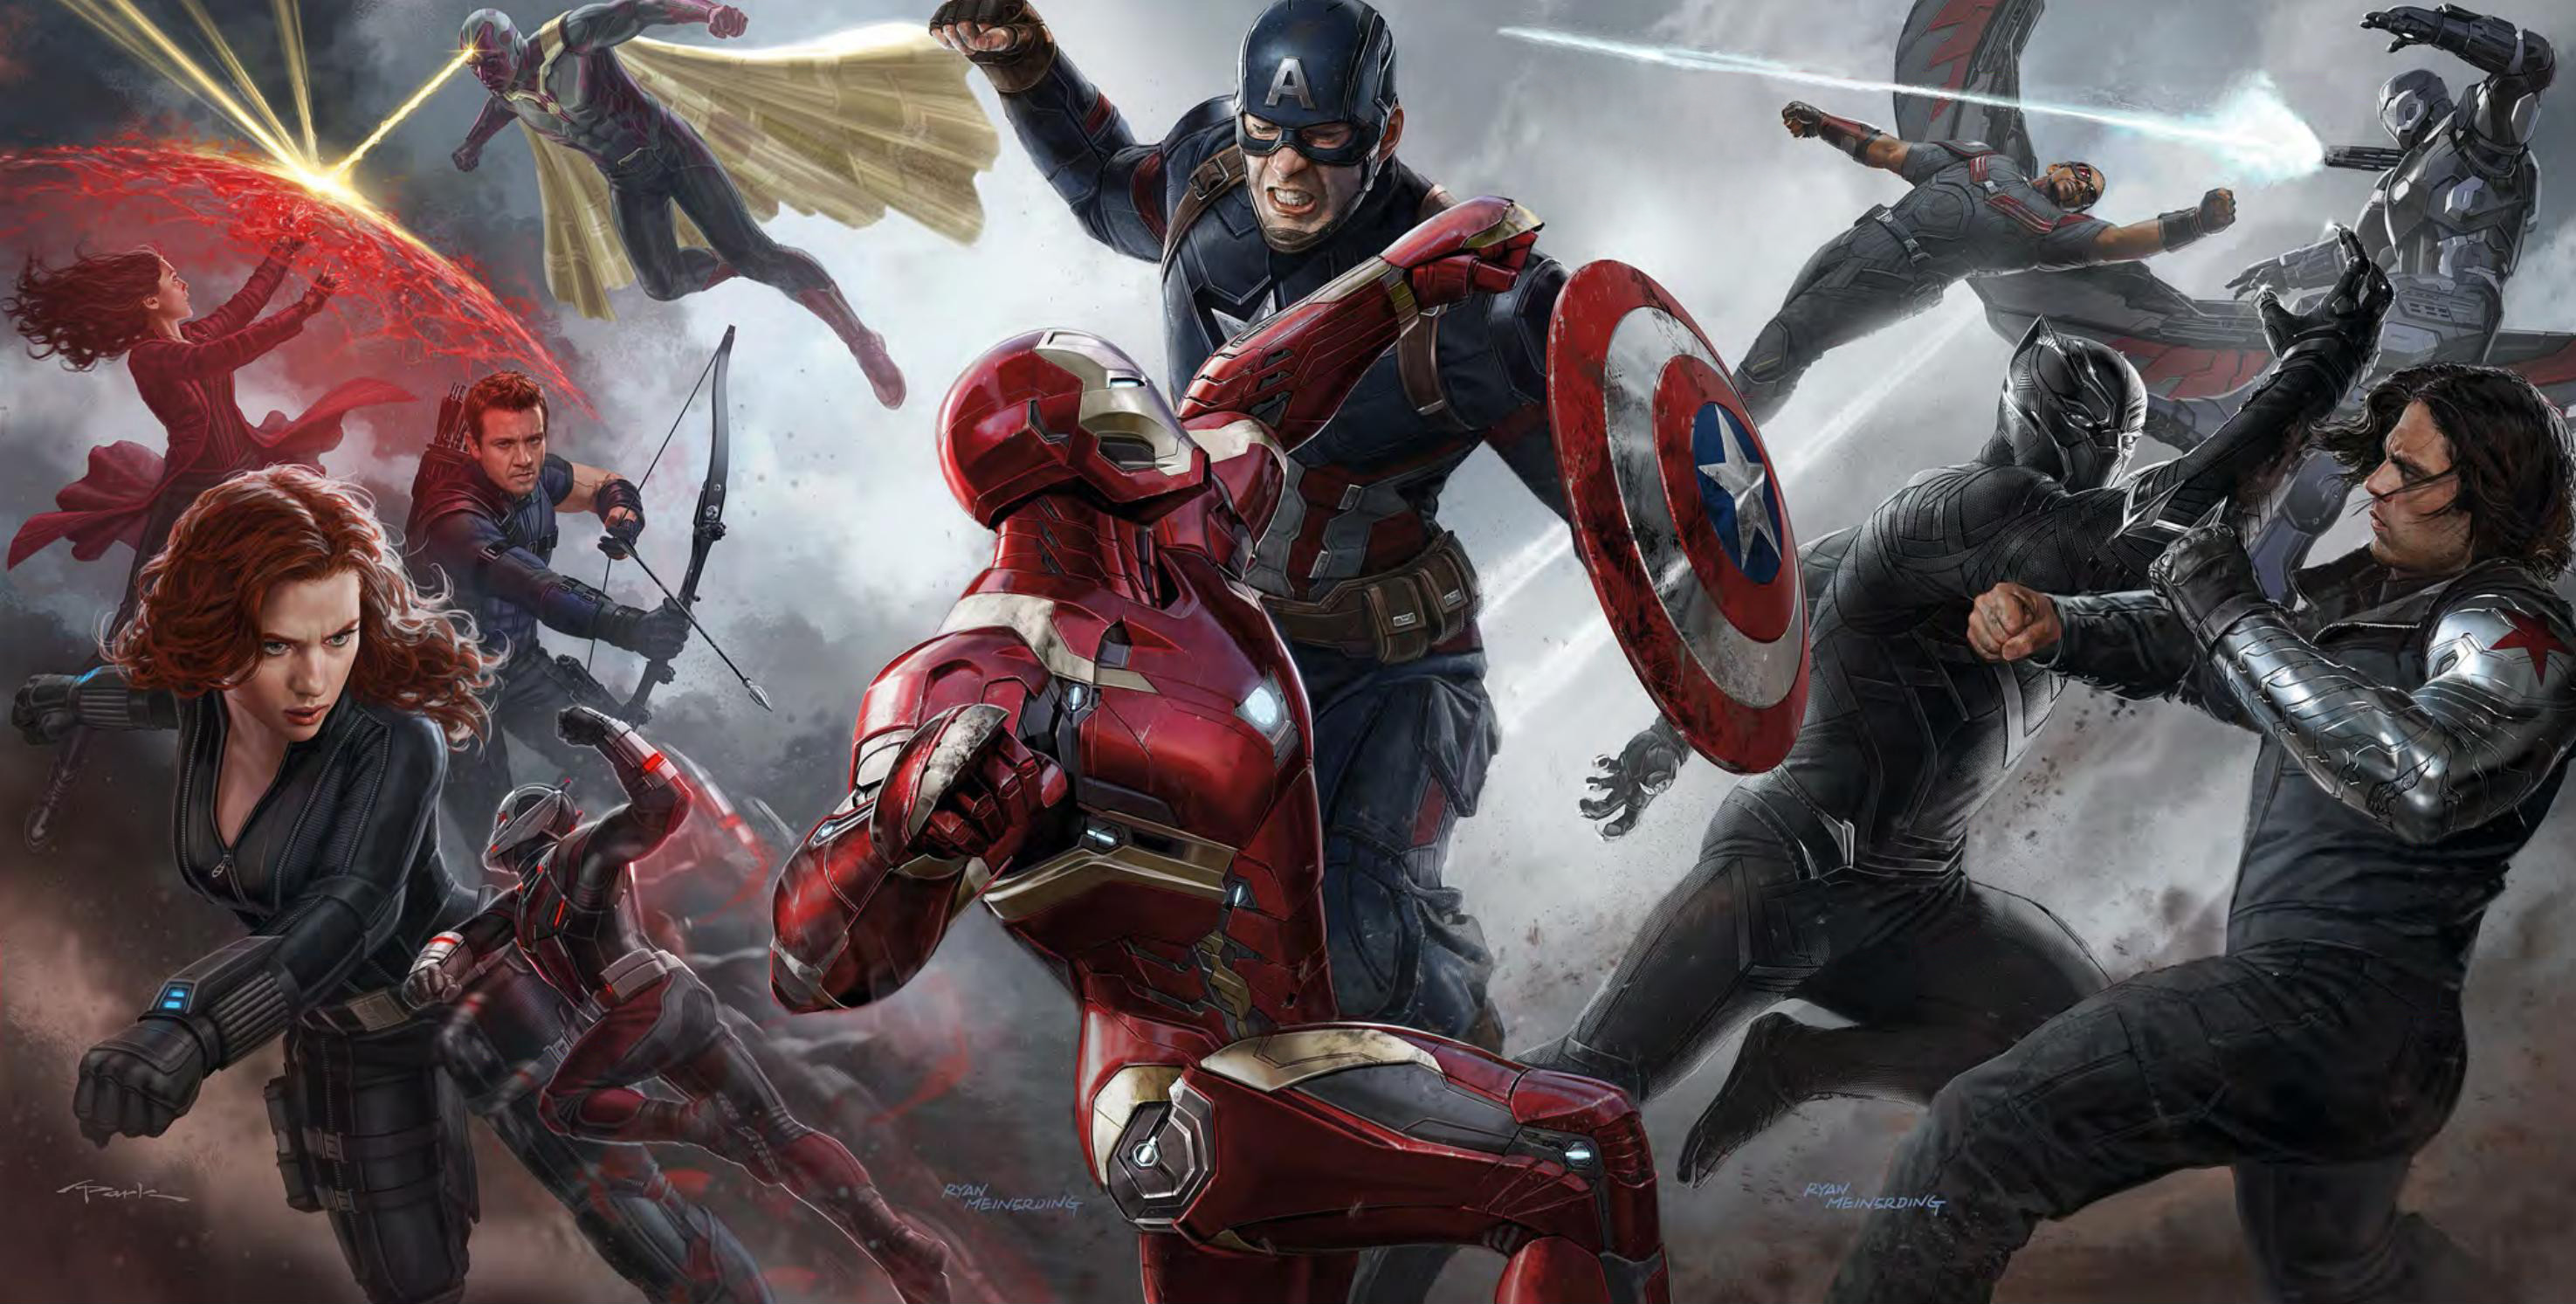 'Captain America: Civil War' earns $200.2 mn